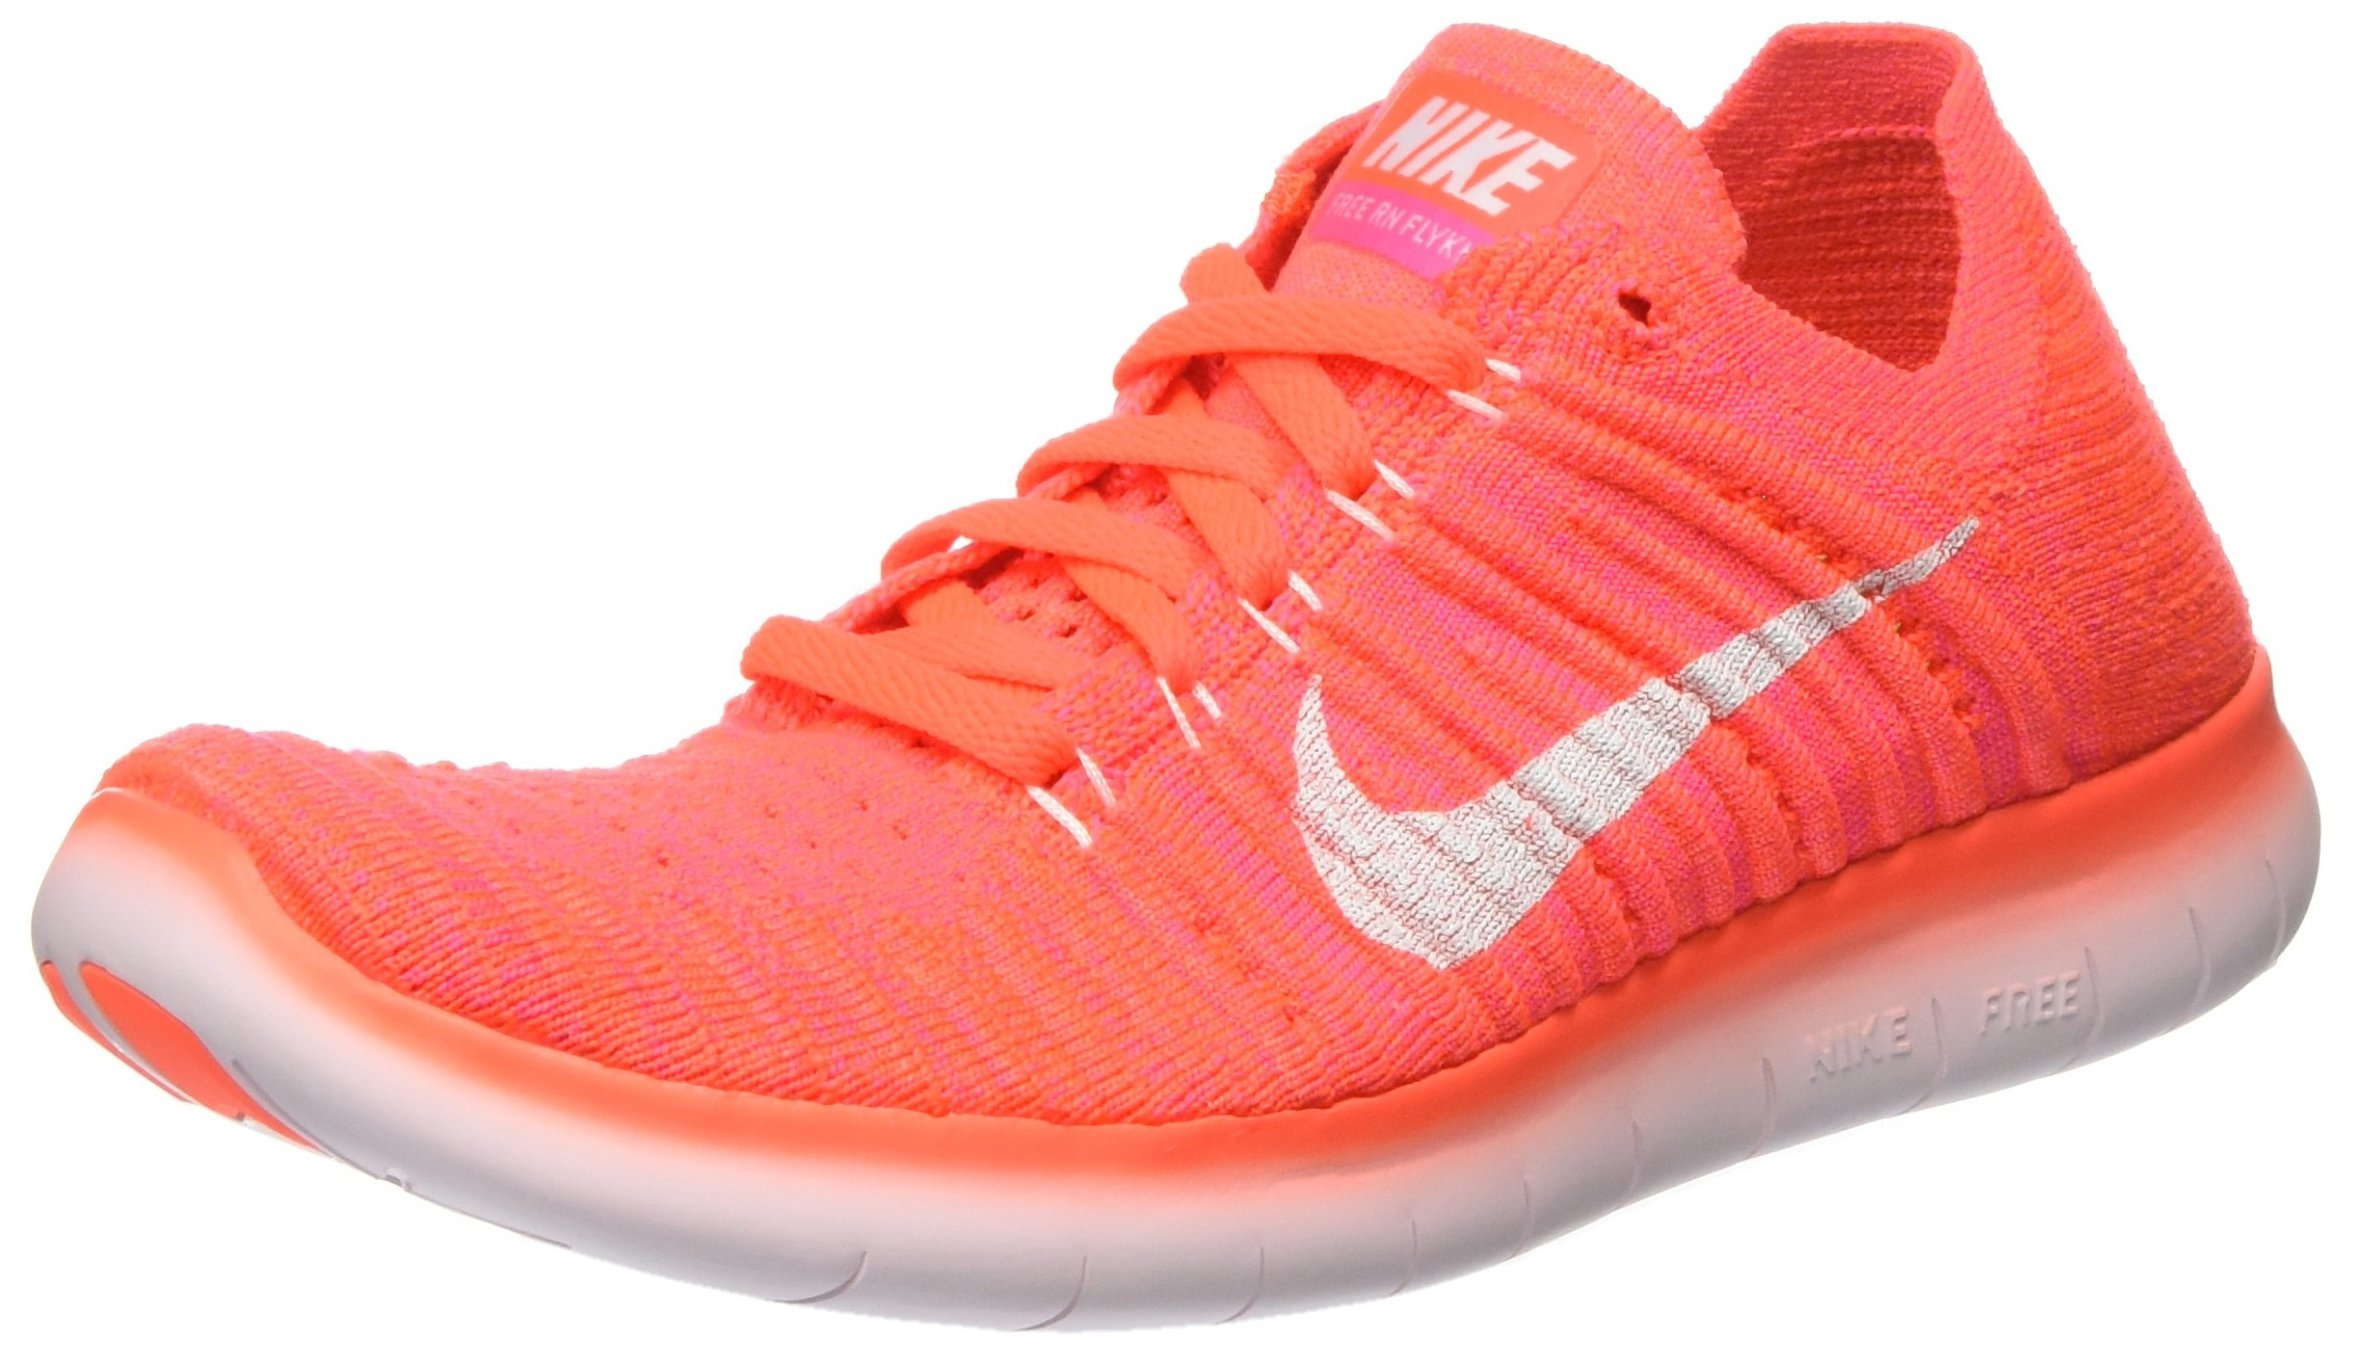 diseñador de moda rebajas outlet entrega rápida Nike Women's Free Rn Flyknit Running Shoes - Buy Online in Chile. | nike  Products in Chile - See Prices, Reviews and Free Delivery over CLP50.000 |  Desertcart